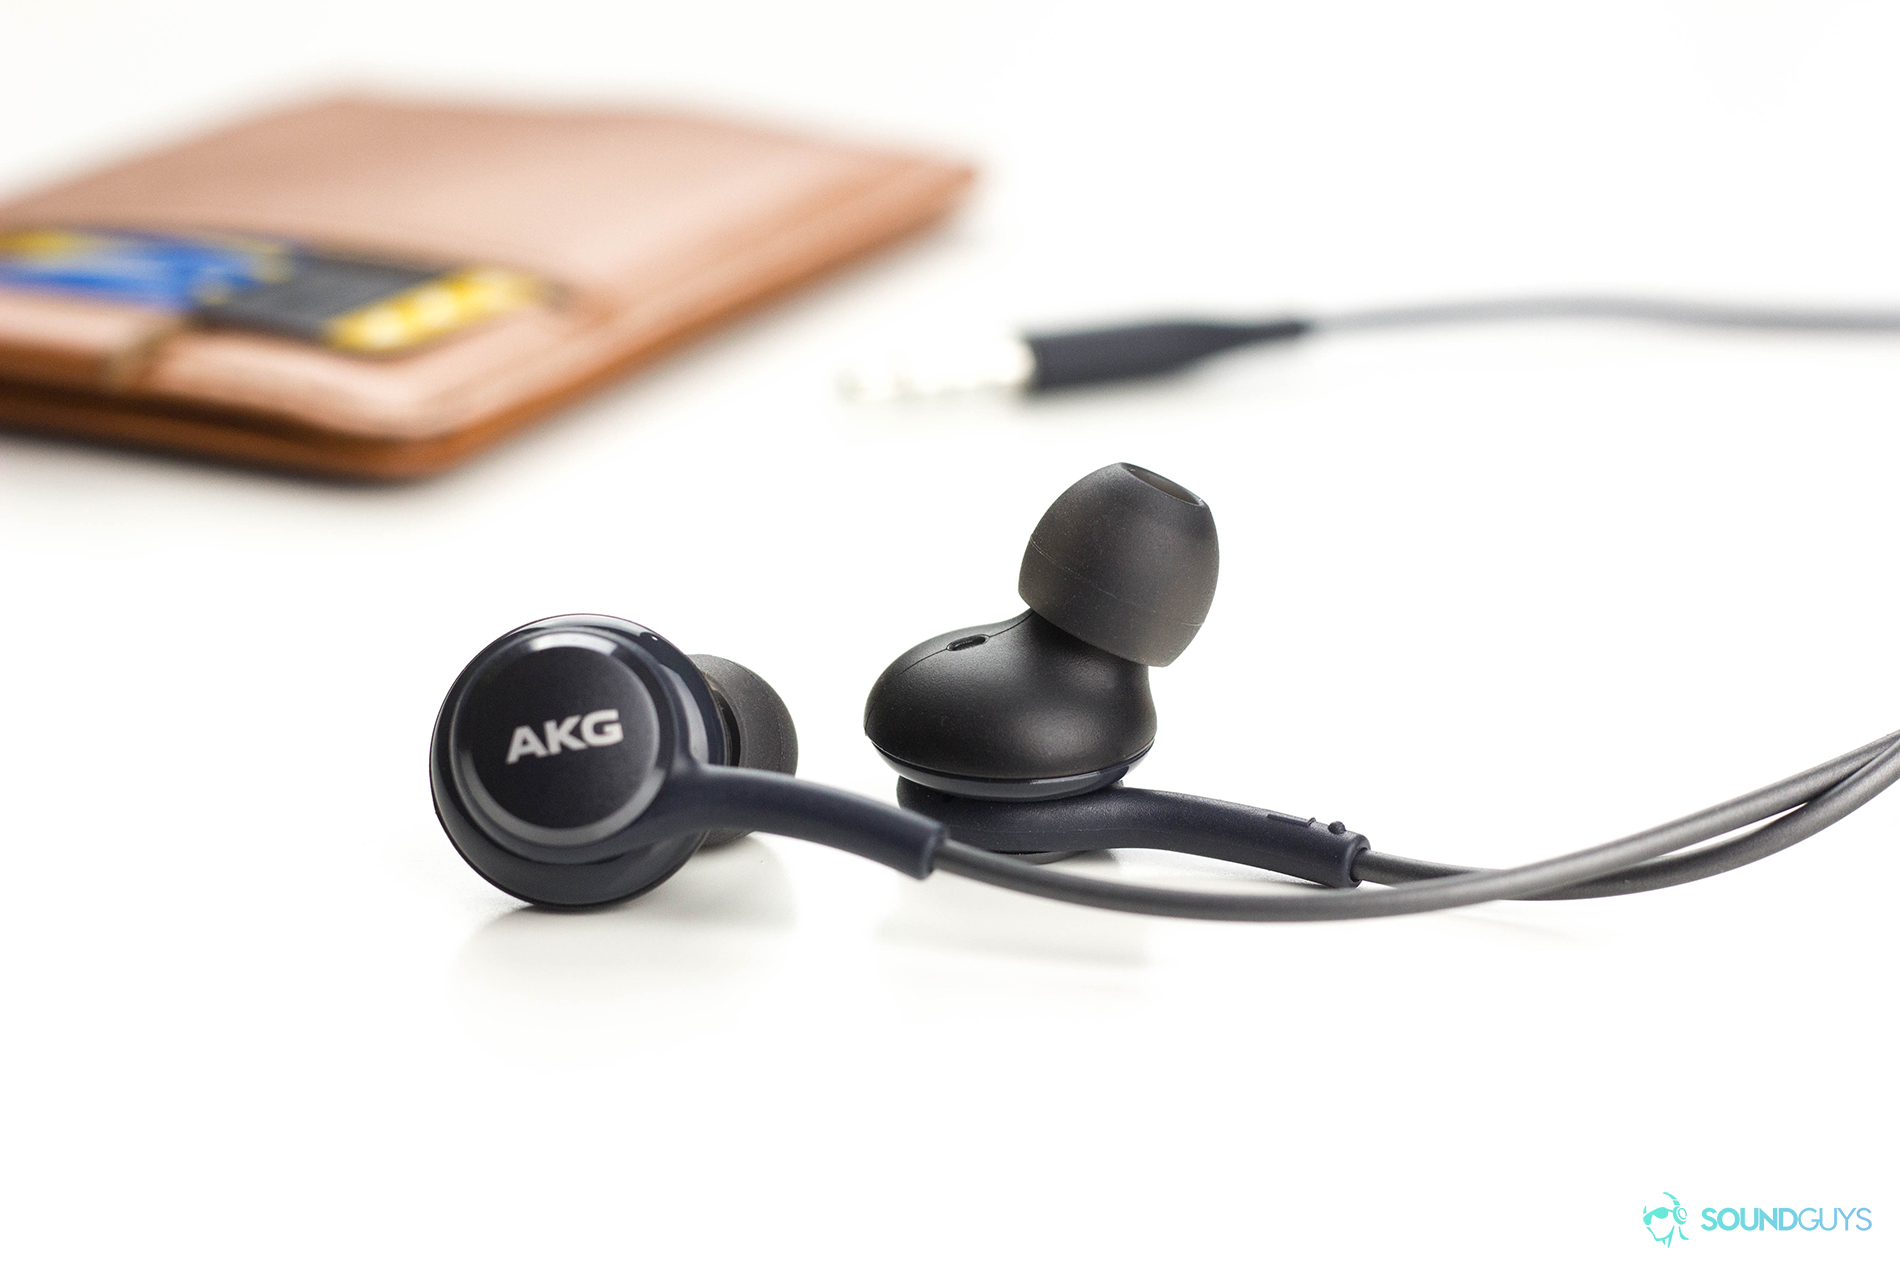 These Akg Earbuds Come Free With The Samsung Galaxy S8 Soundguys